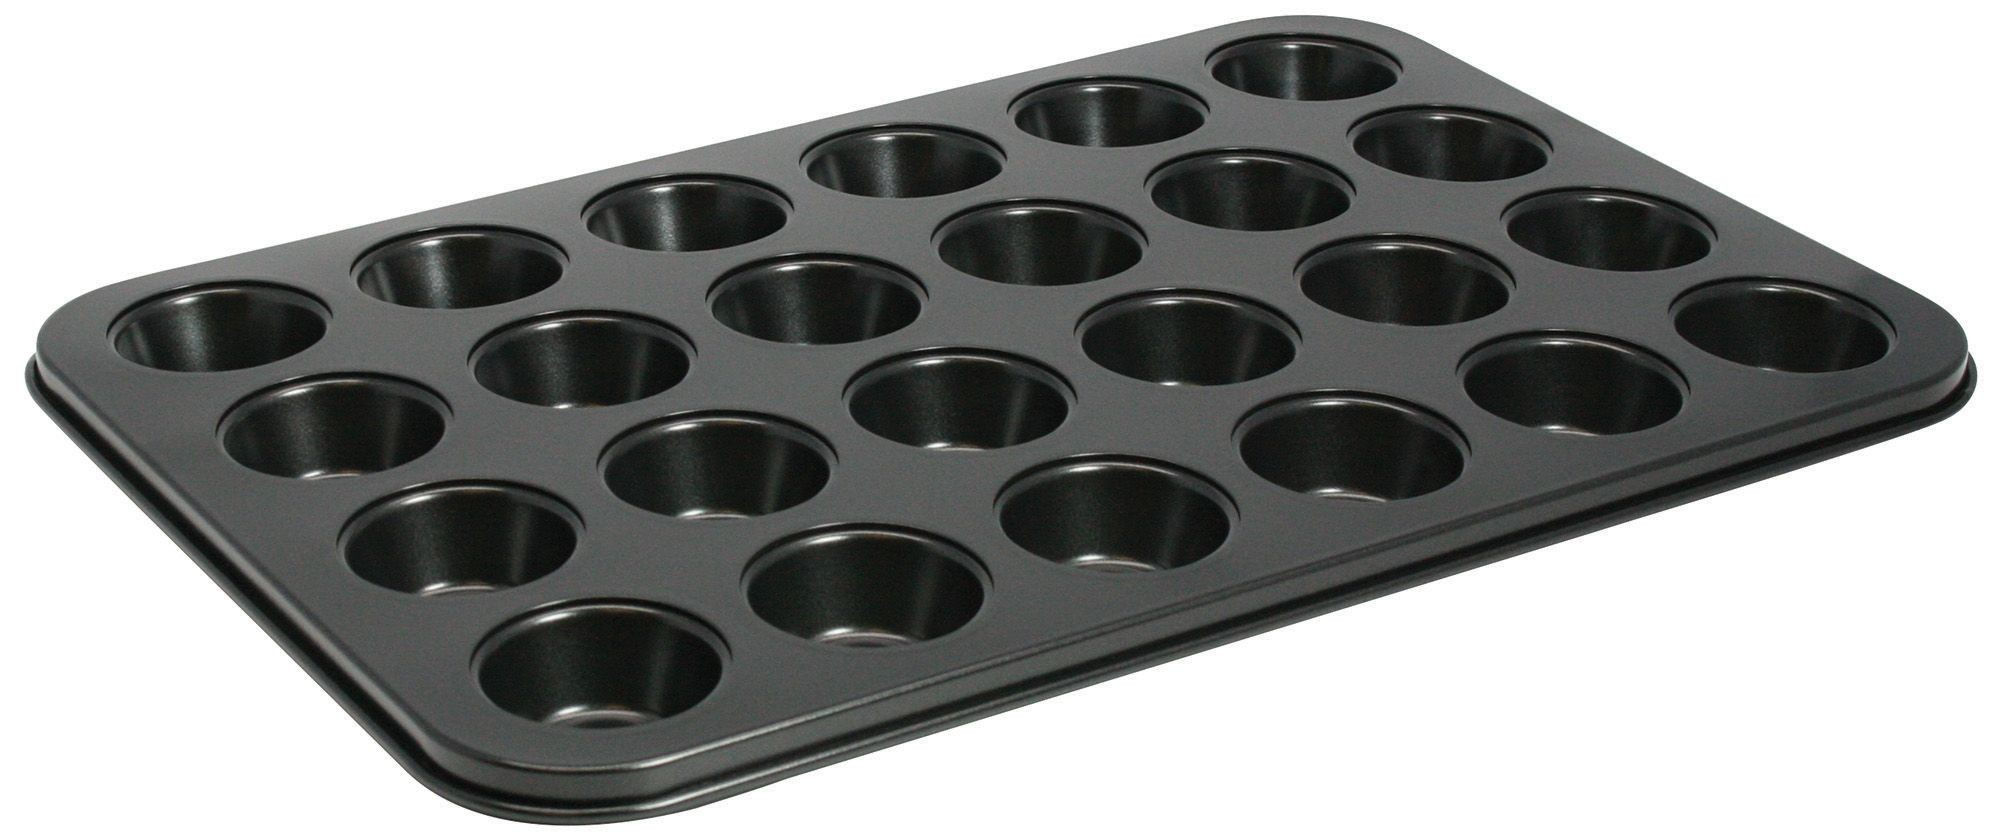 "Winco AMF-24MNS Non-Stick Aluminum 24-Compartment Mini Muffin Pan, 13-3/4"" x 10-1/2"""